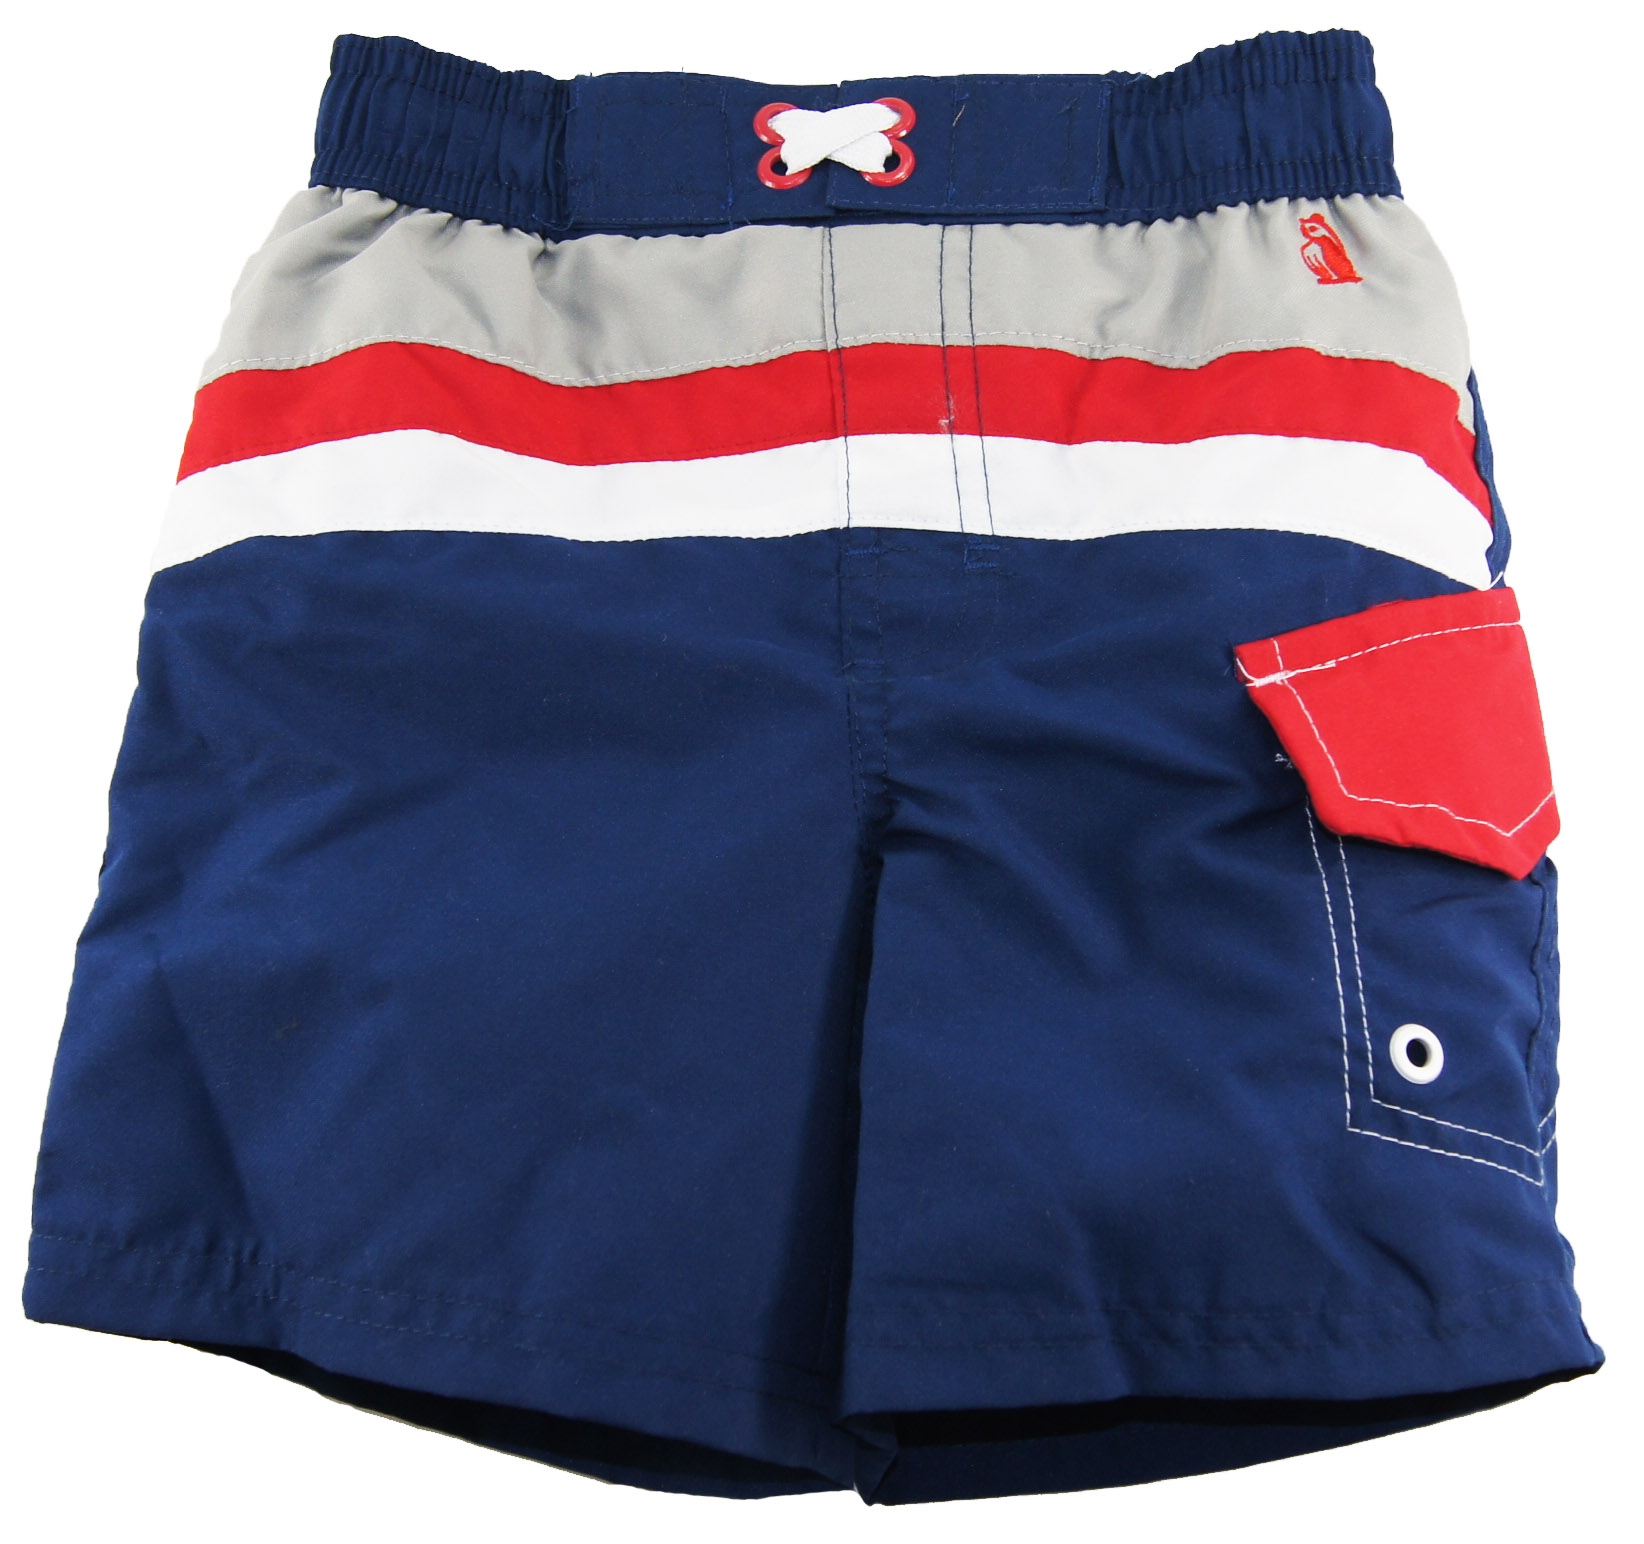 Rugged Bear Baby Boys Swimwear Stripes Color Block Swim Trunk